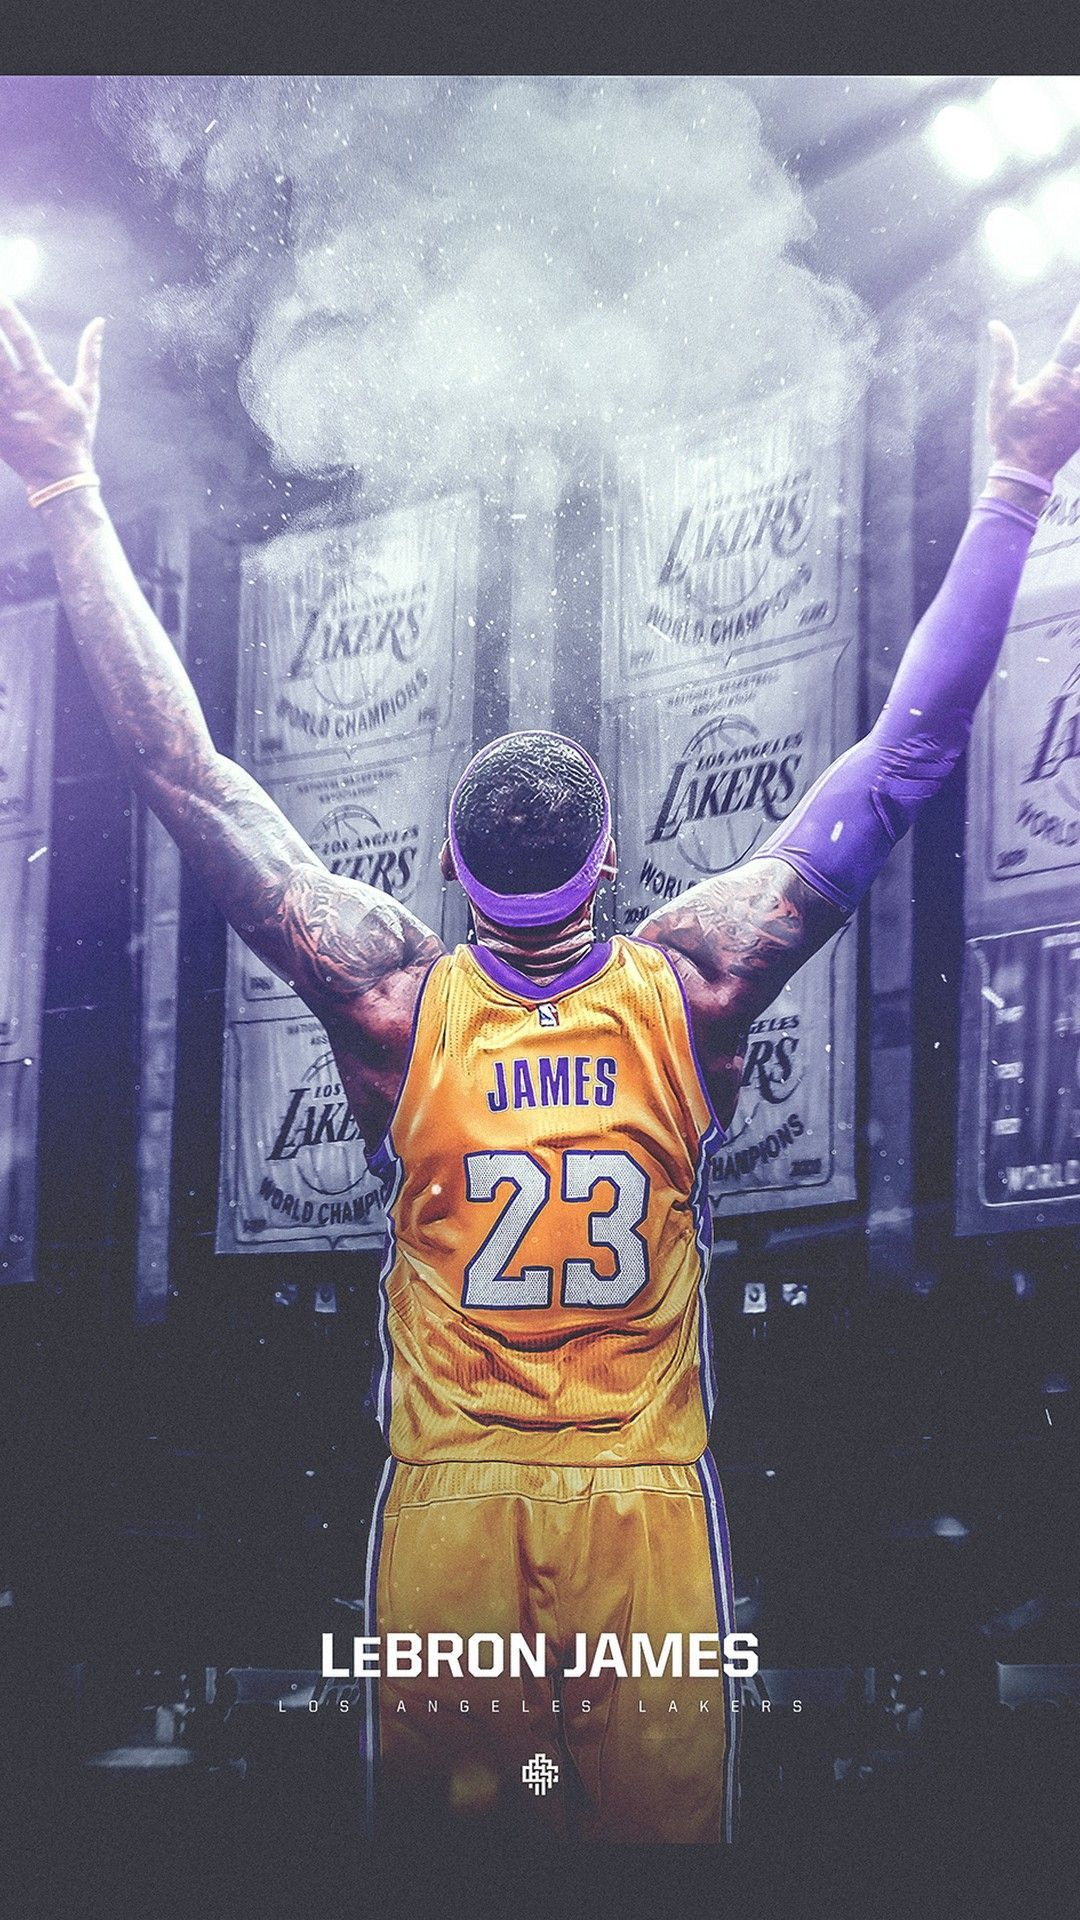 Lebron James La Lakers Hd Wallpaper For Iphone Basketball Wallpapers Hd Lebron James Wallpapers Lebron James Poster